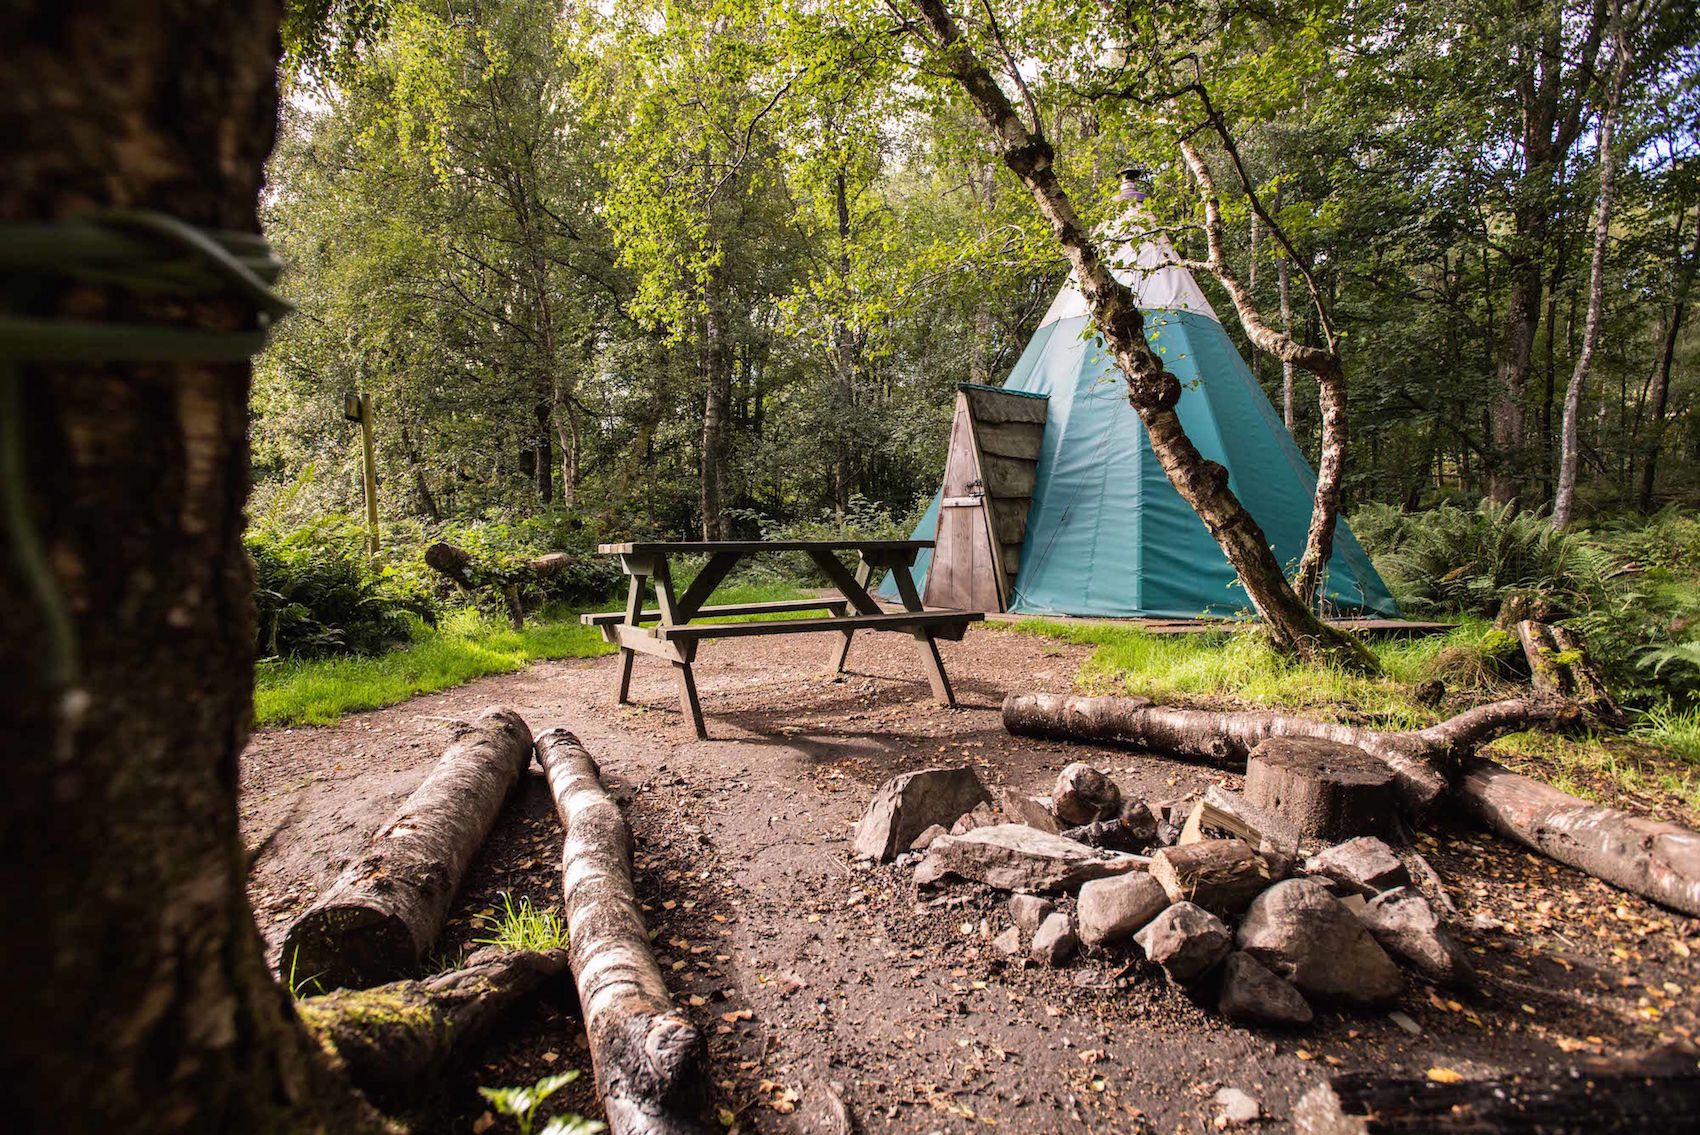 Glamping in Perthshire – The best glamping locations in Perthshire